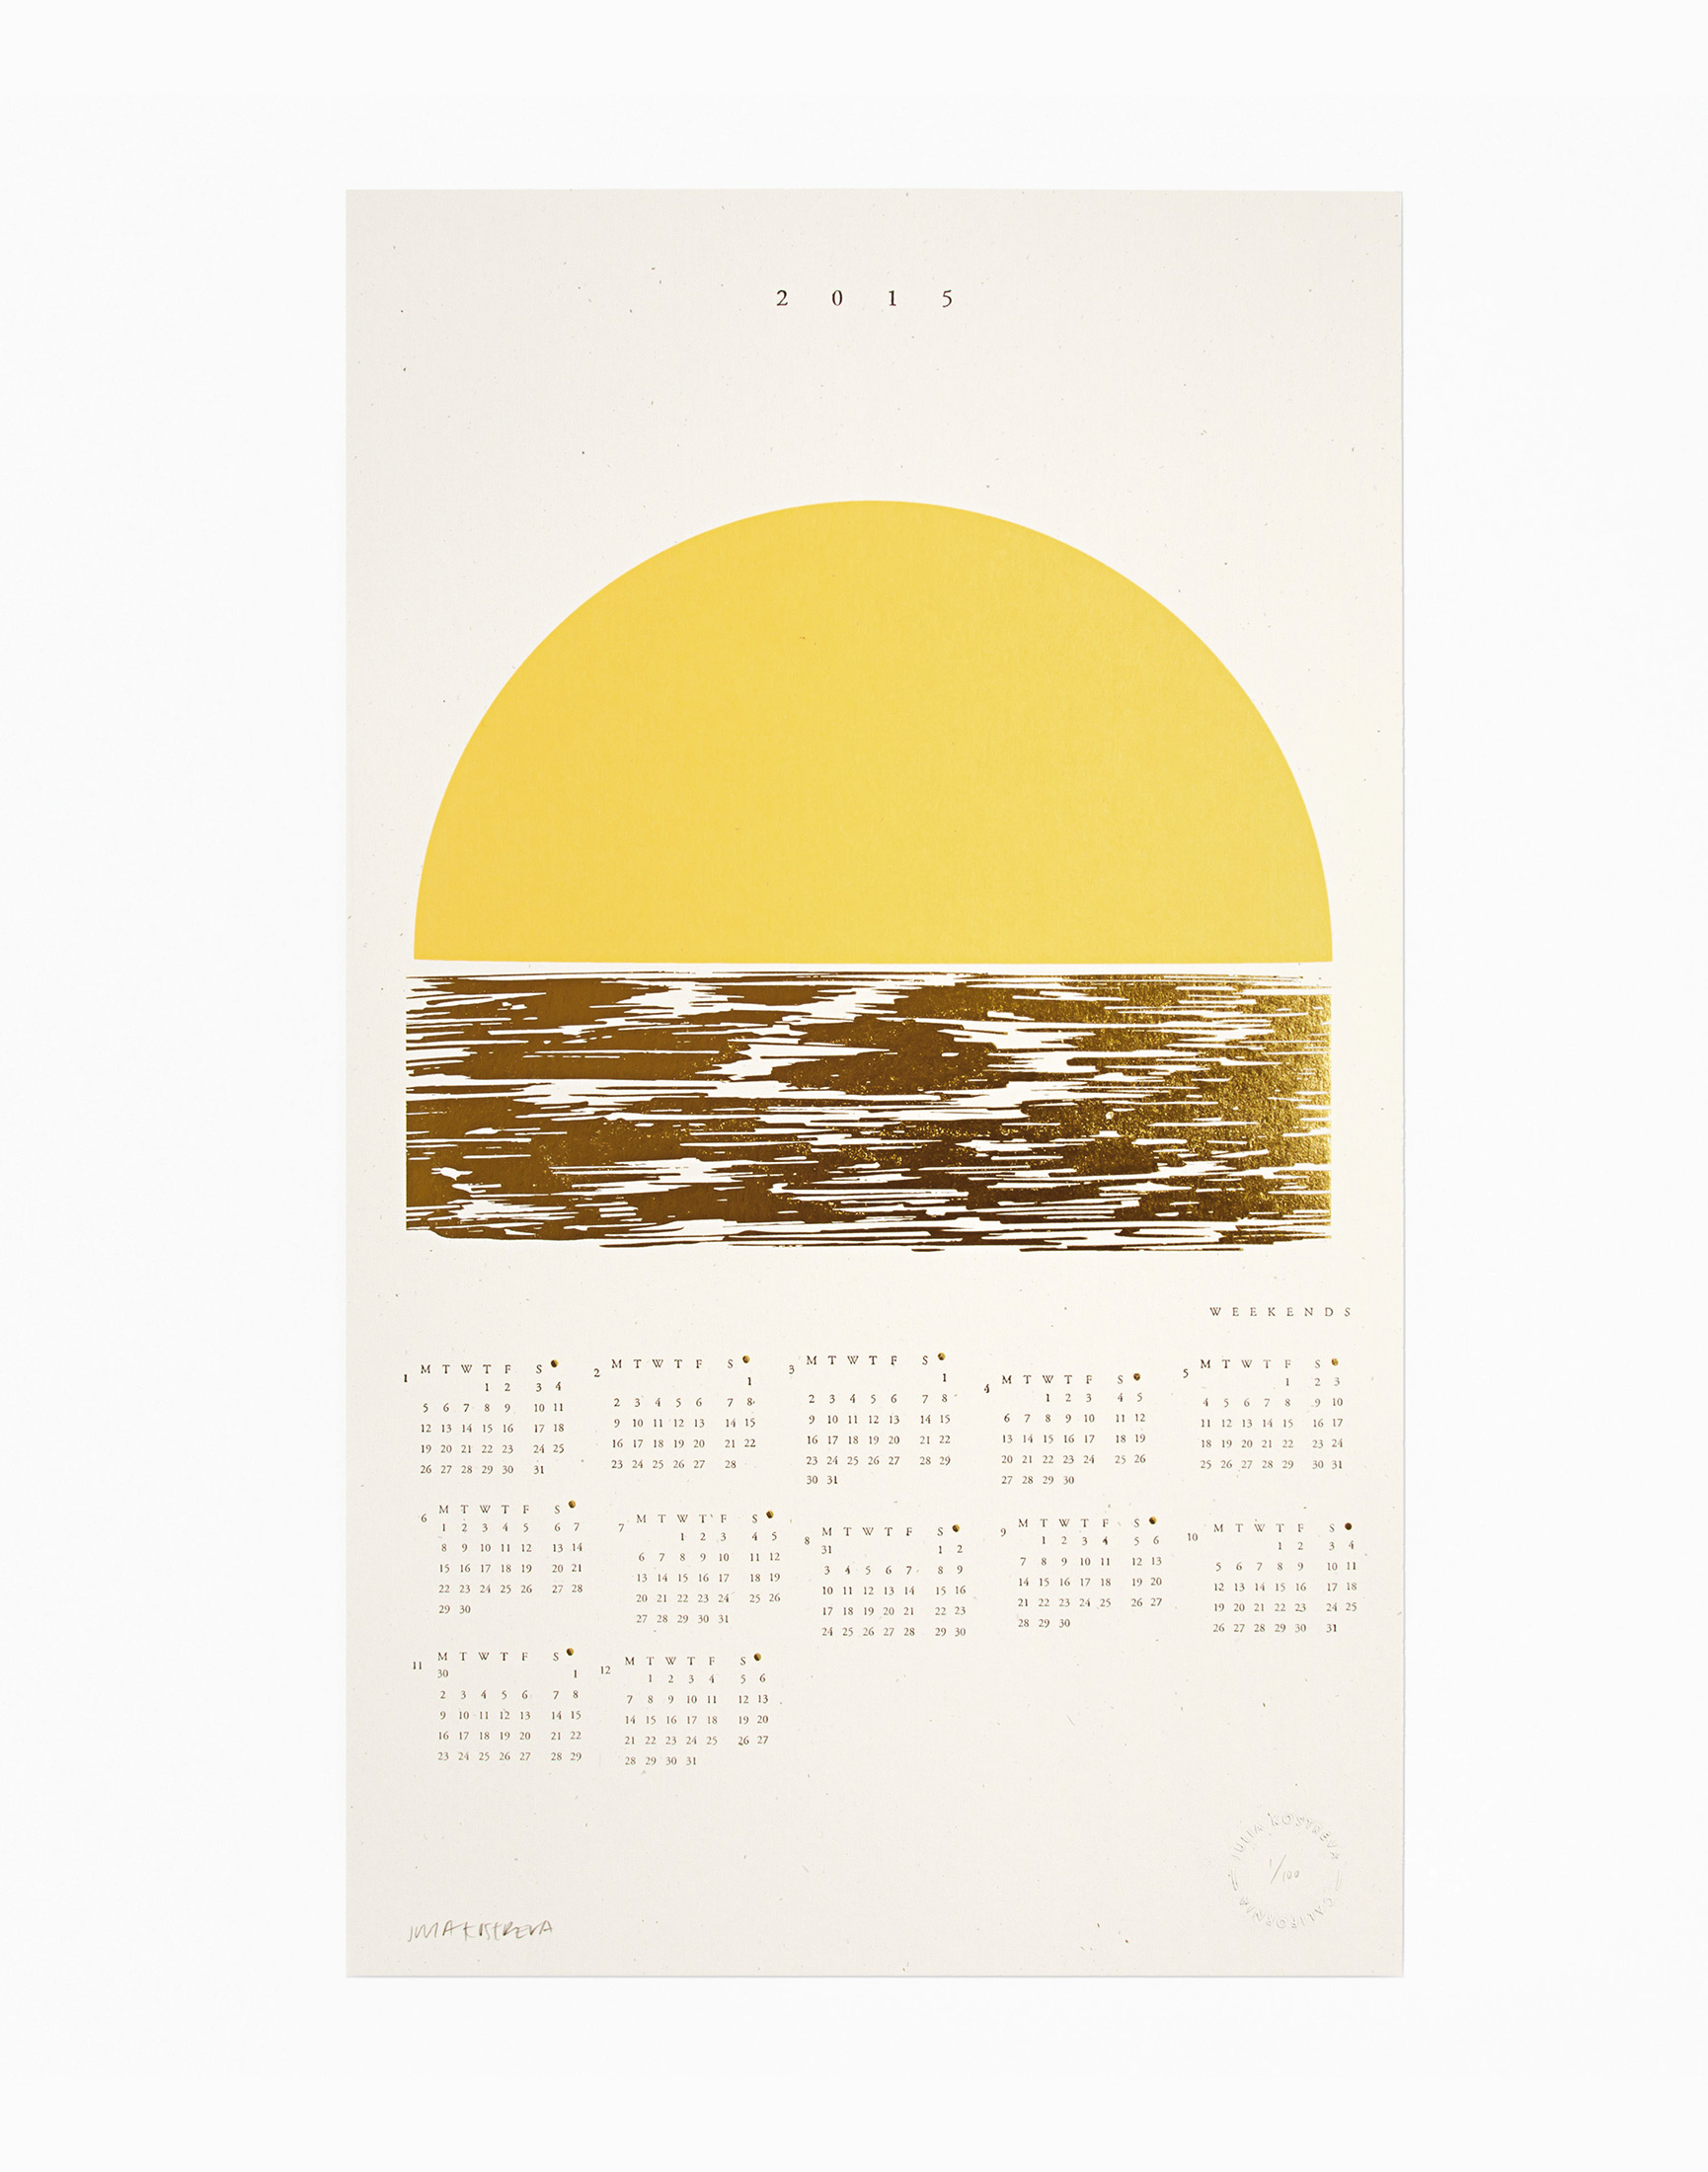 Gold Foil Golden Weekends Calendar, Julia Kostreva